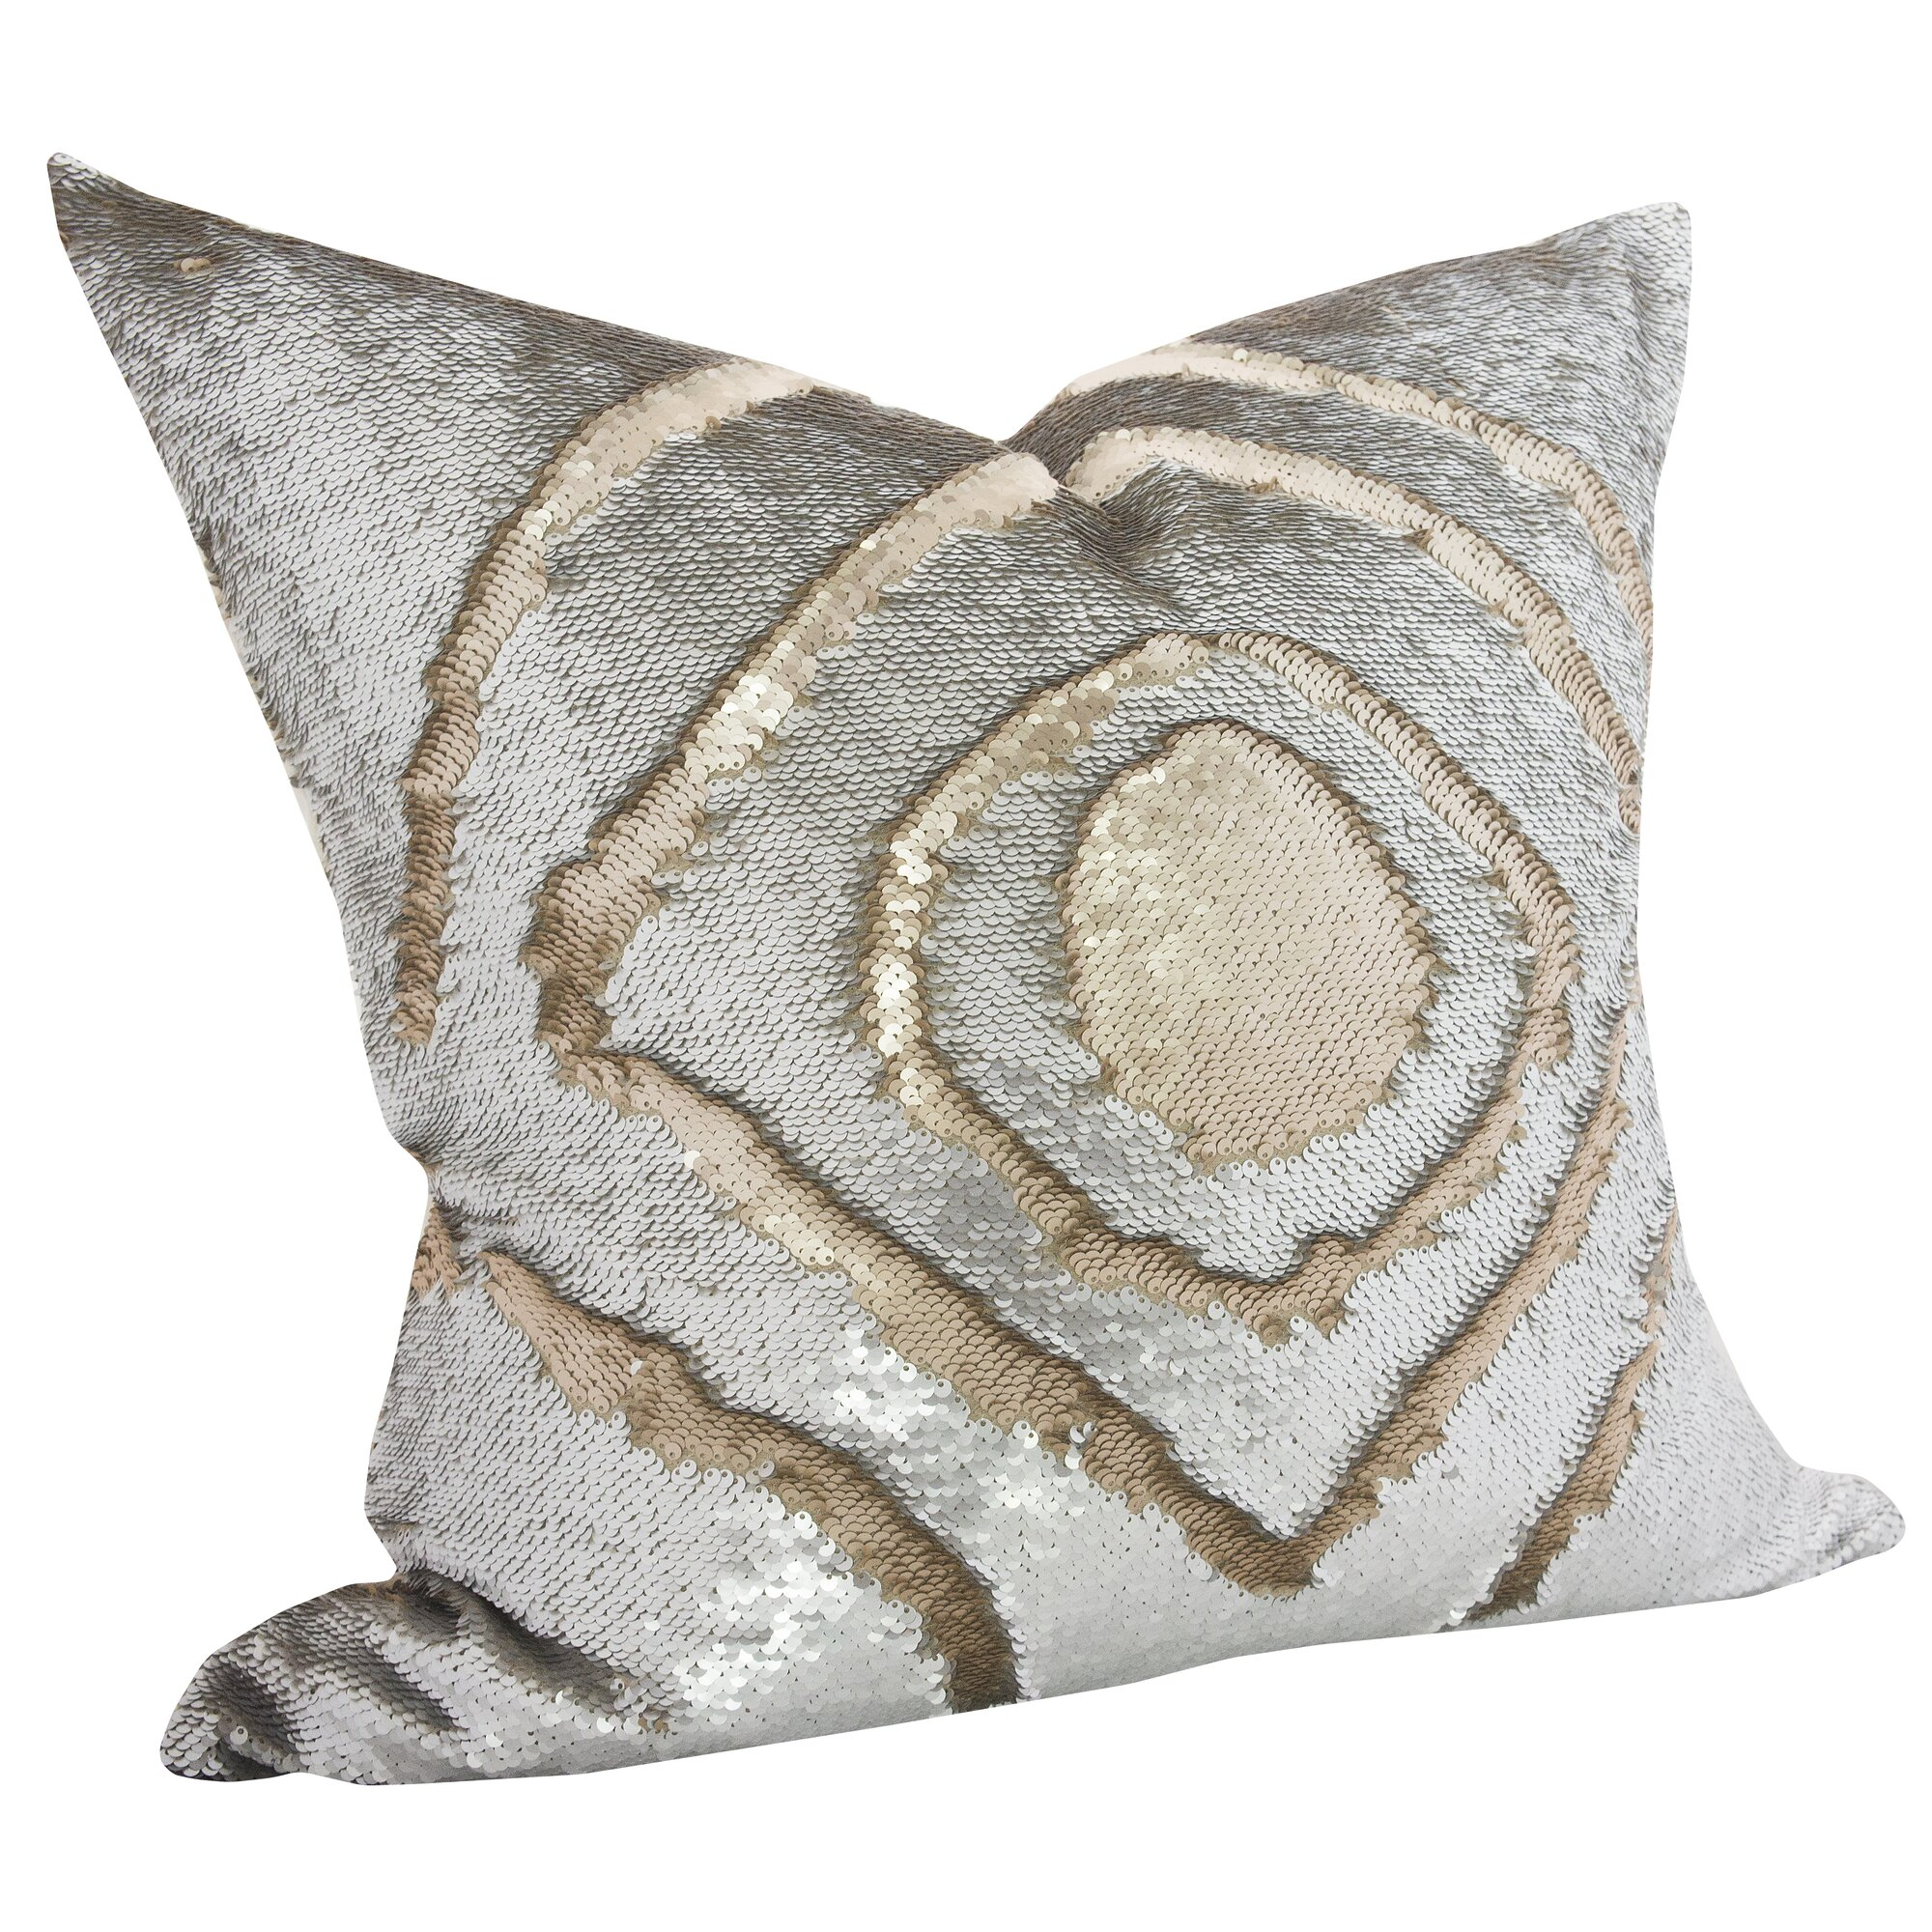 Sequin Elephant Throw Pillow : TheWatsonShop Mermaid Sequin Throw Pillow & Reviews Wayfair.ca